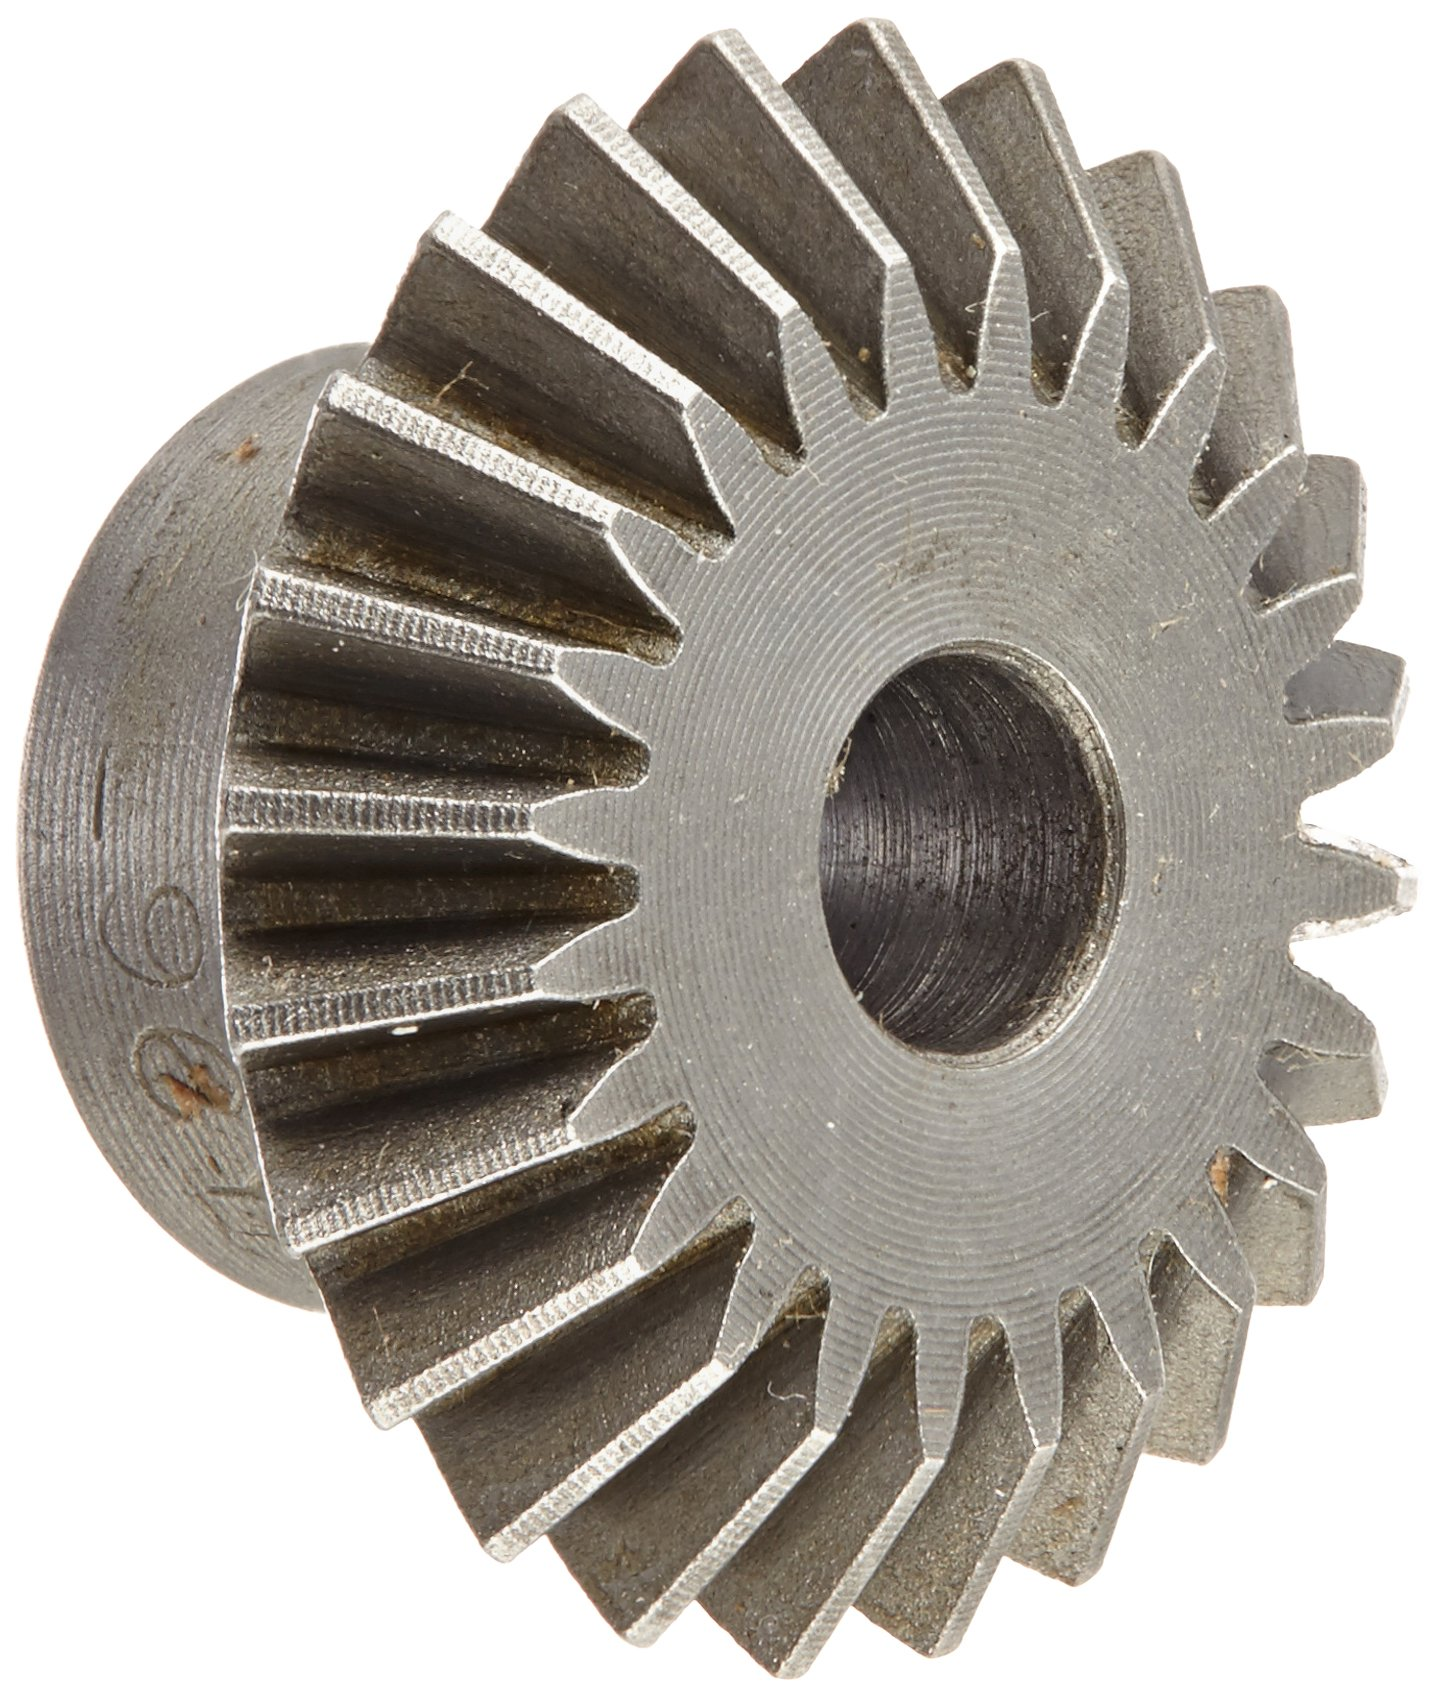 Boston Gear L96Y Miter Gear, 1:1 Ratio, 20 Degree Pressure Angle, 0.250'' Bore, 0.906'' Mounting Distance, 24 Pitch, 24 Teeth, Steel